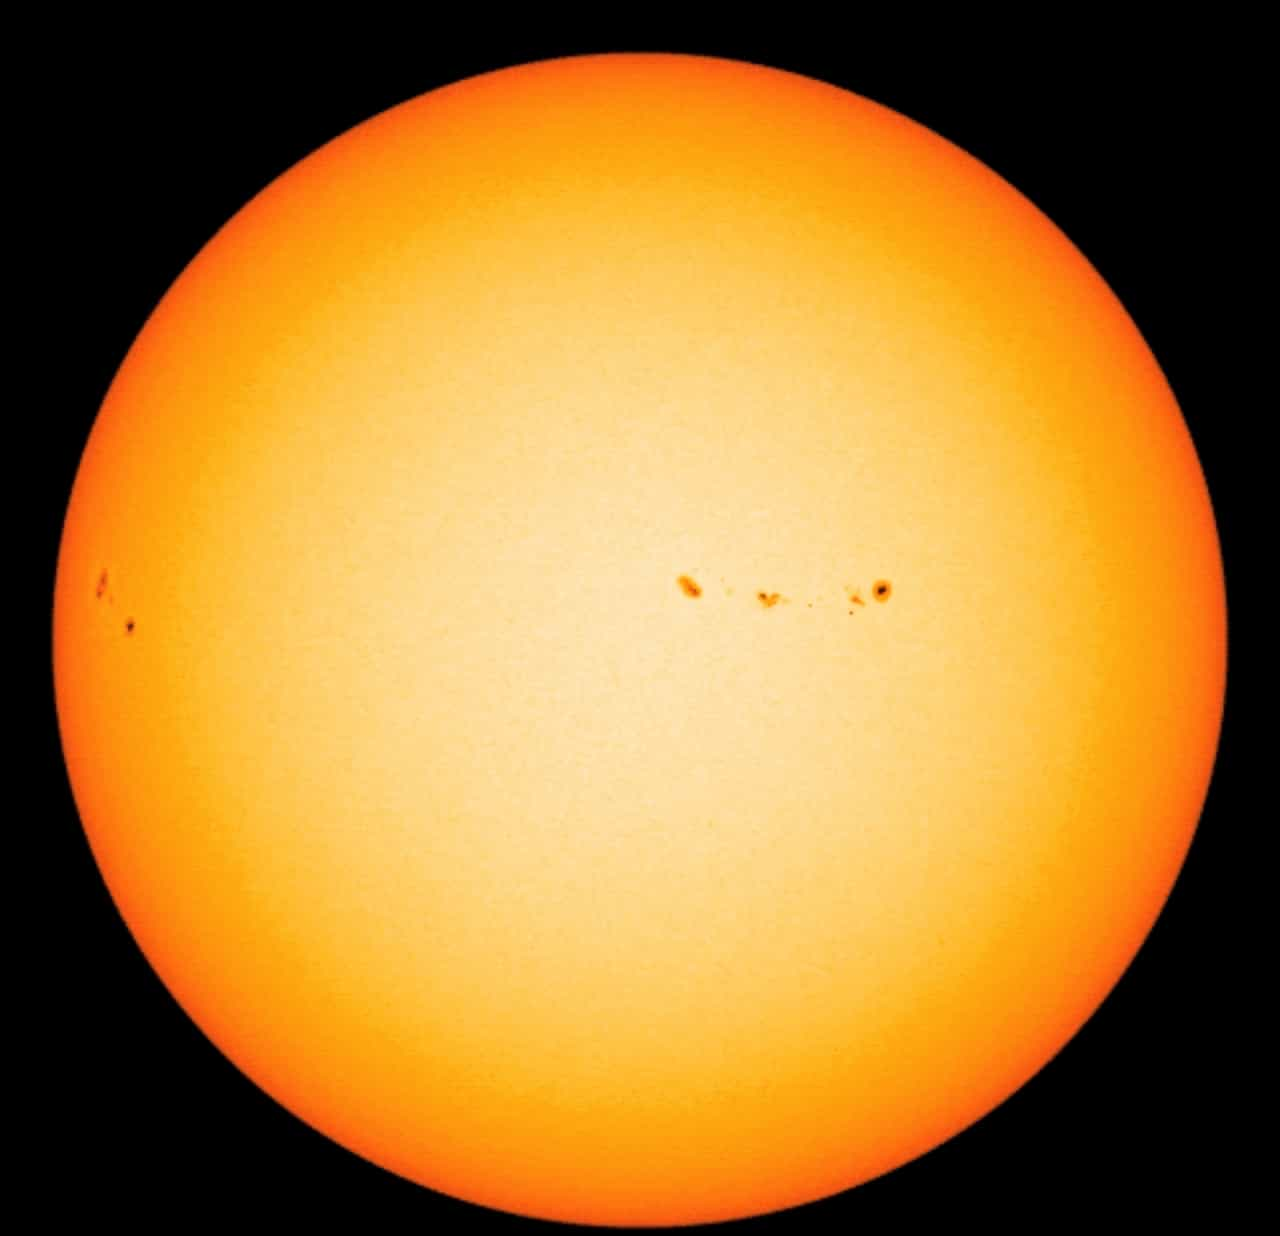 The sun in visible light - facts about the sun